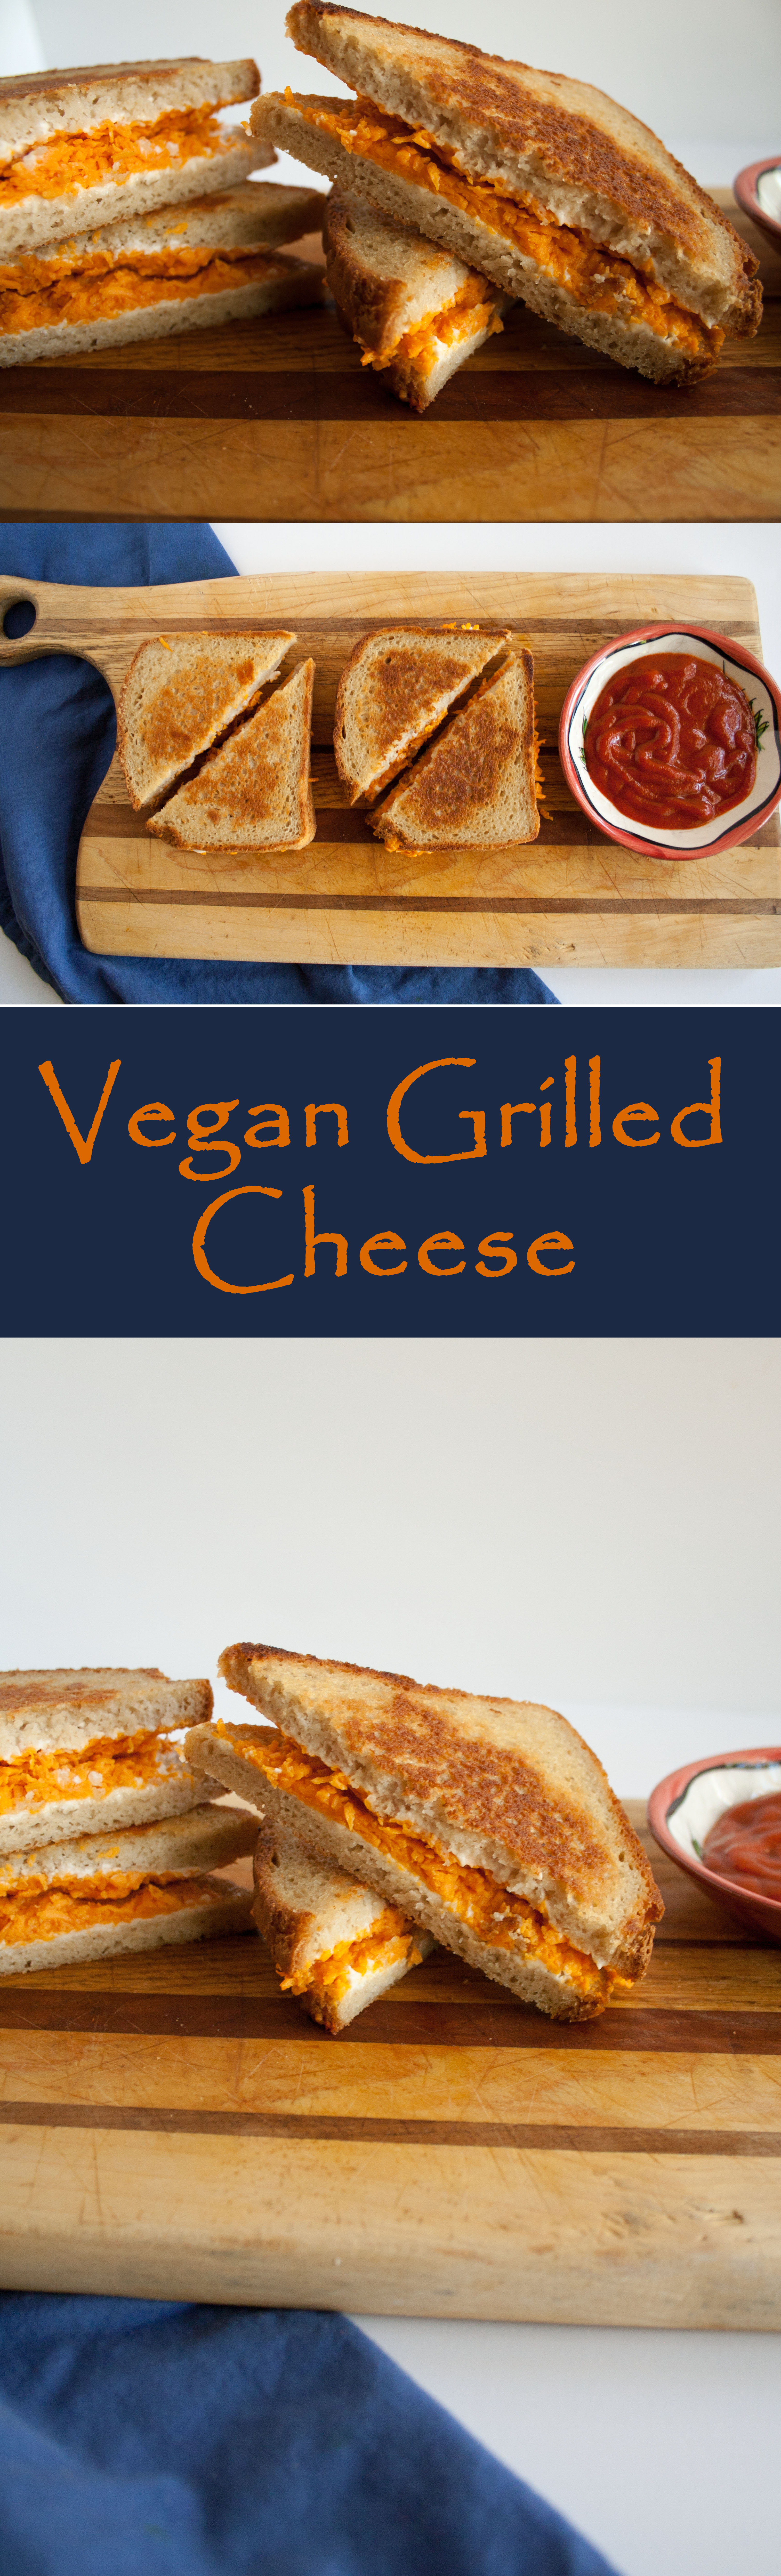 Vegan Grilled Cheese collage photo with text.